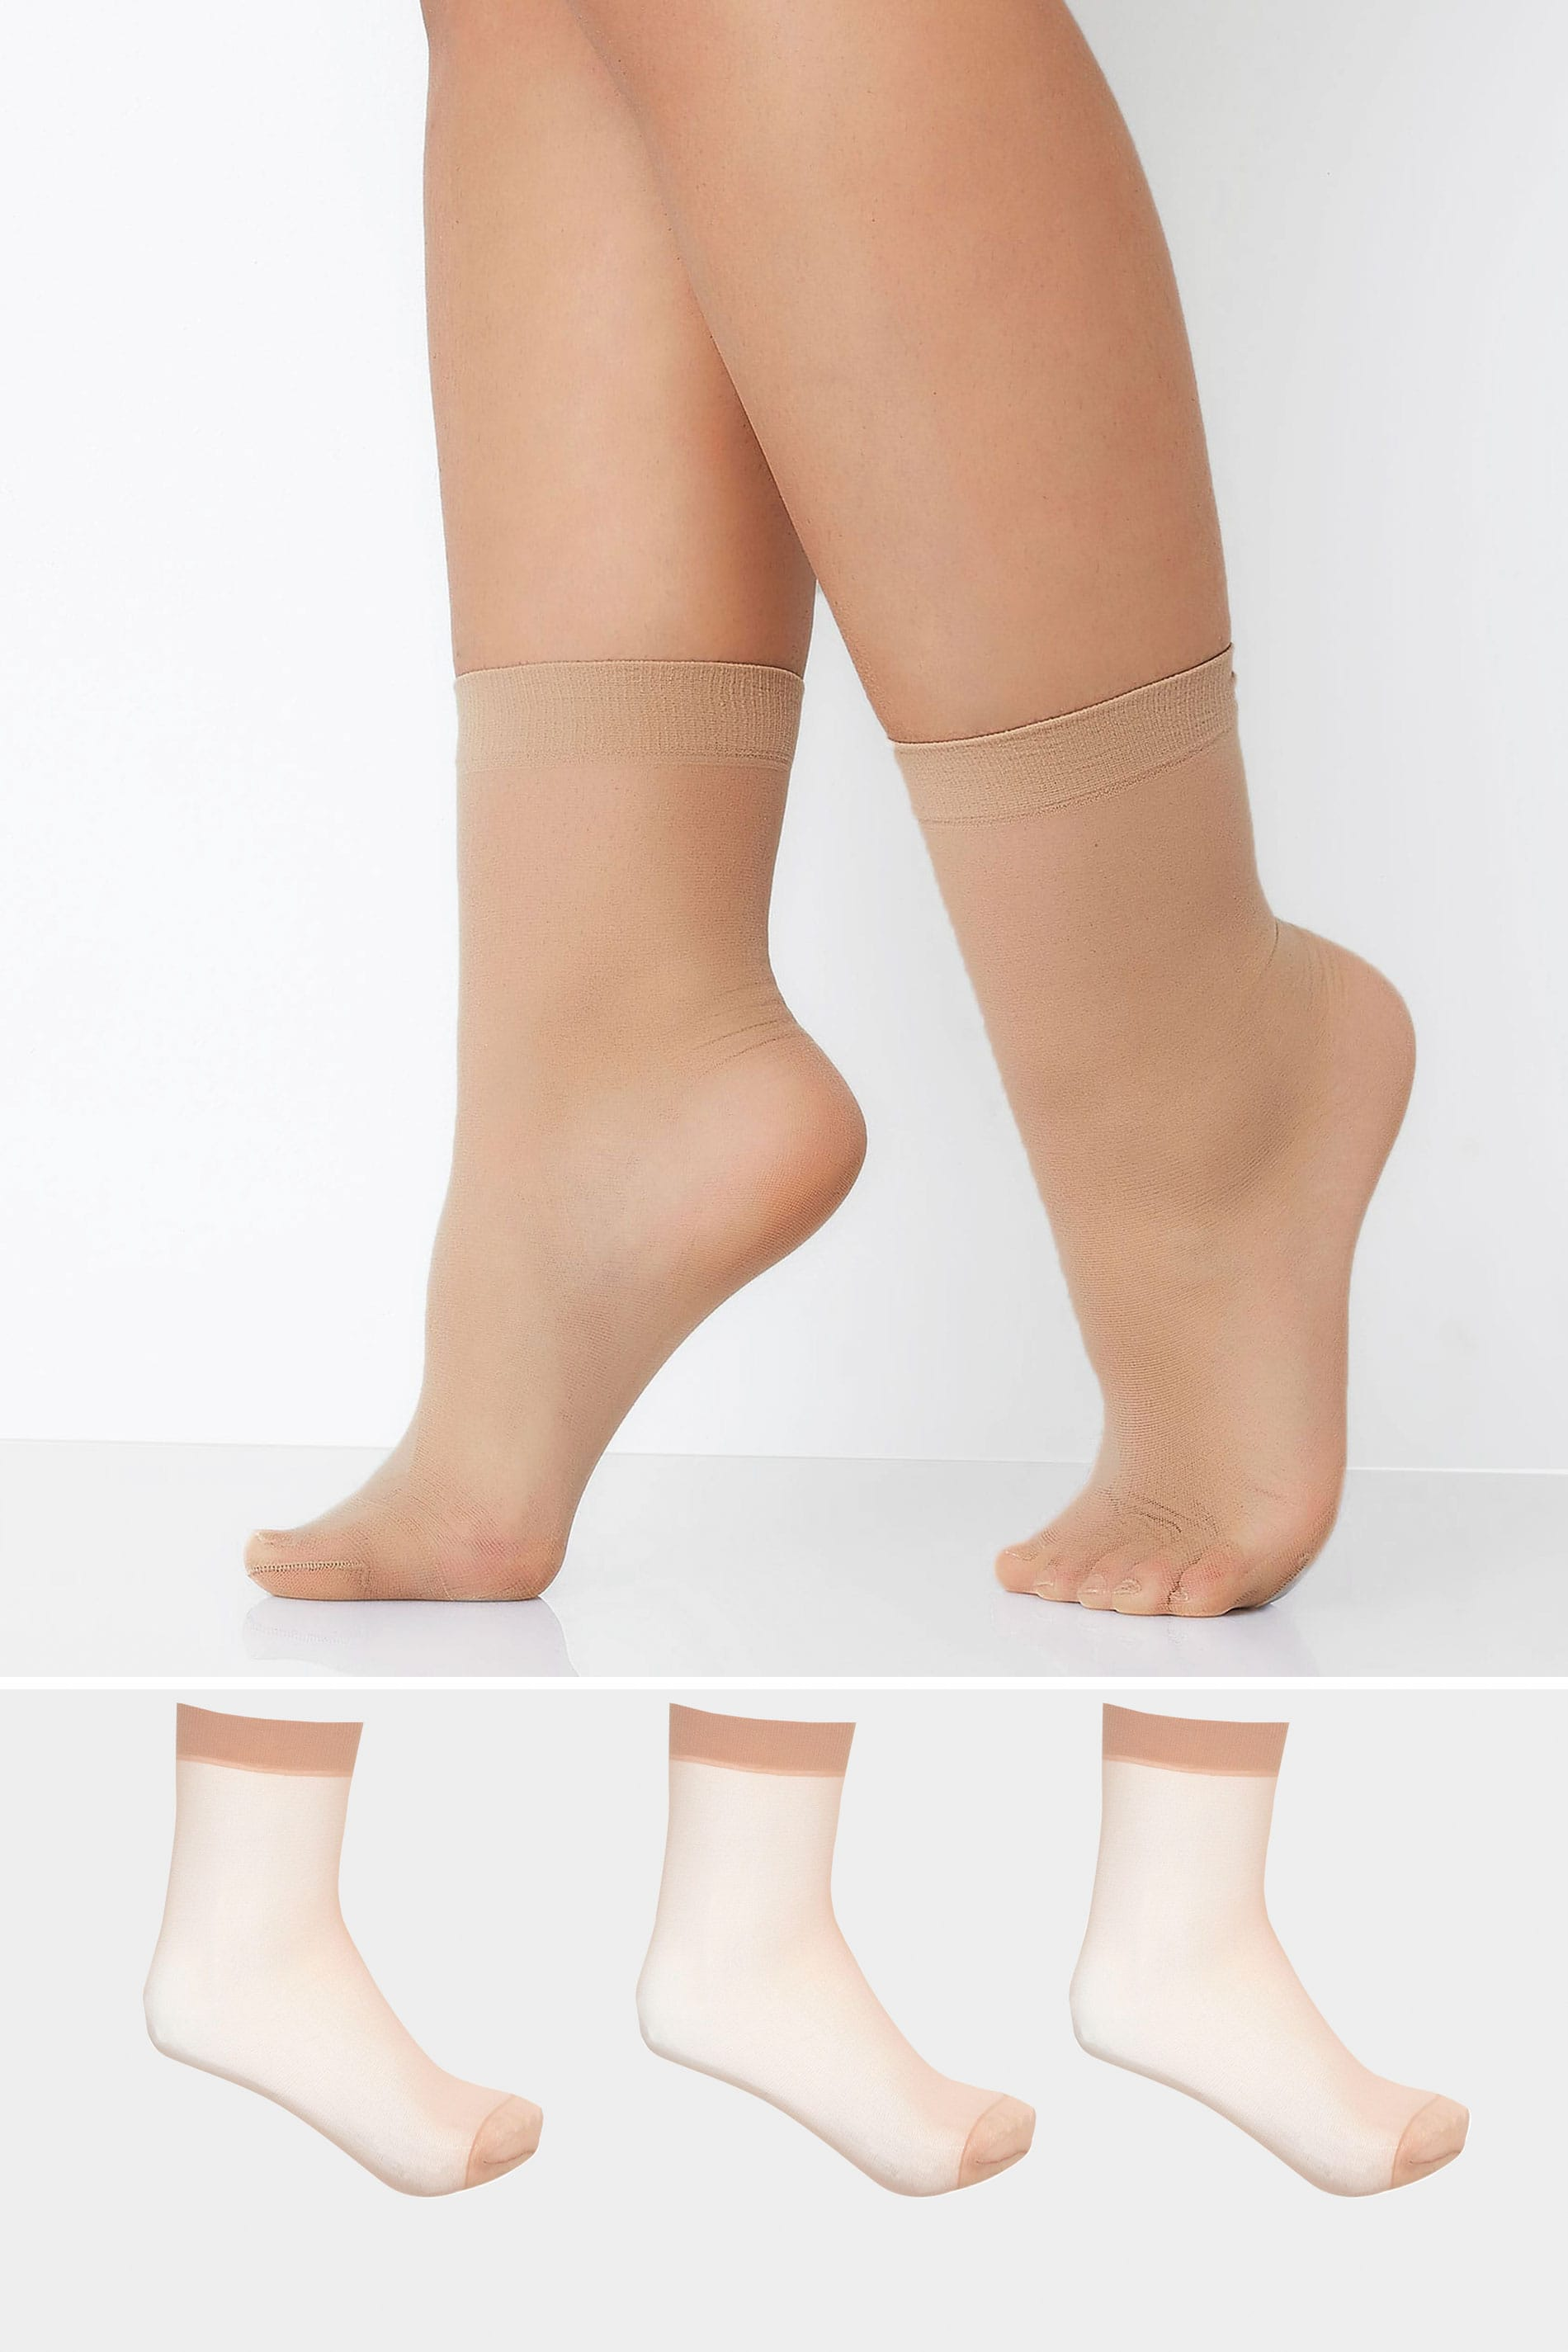 3 PACK Natural Sheer Ankle High Socks